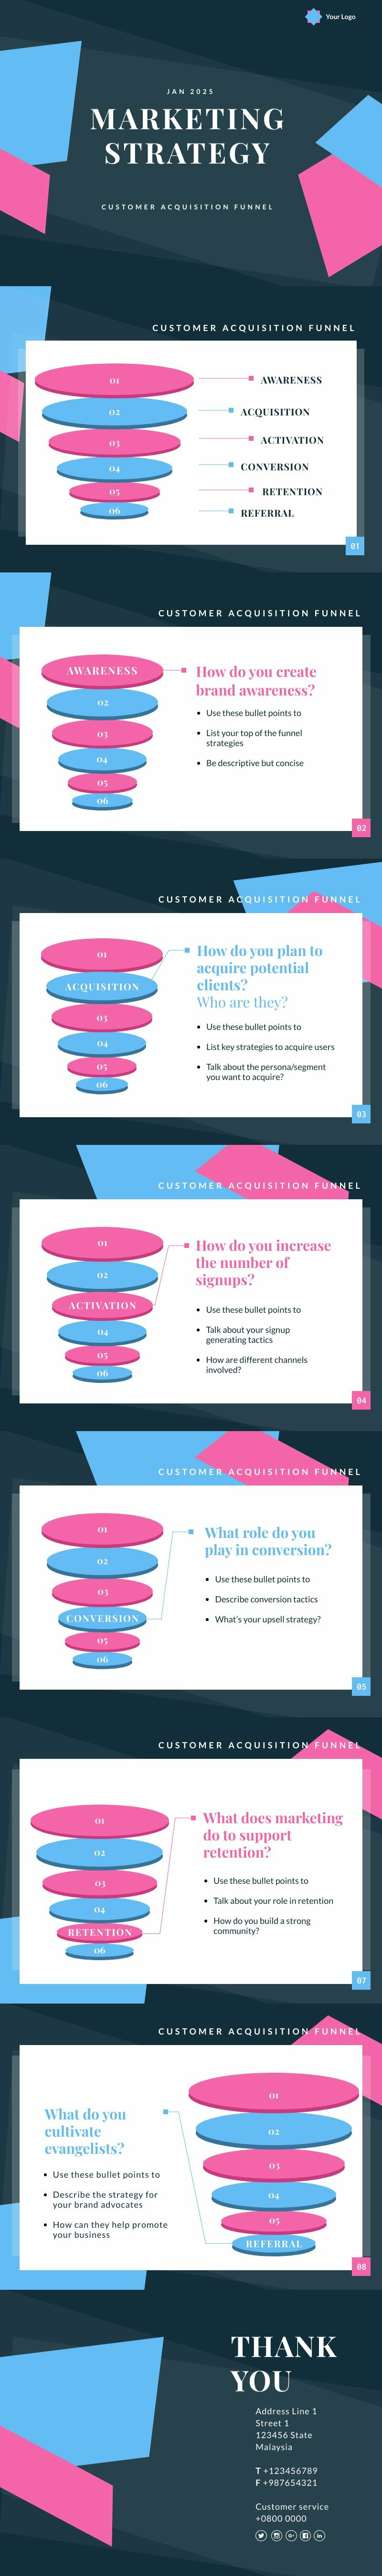 Customer Acquisition Funnel